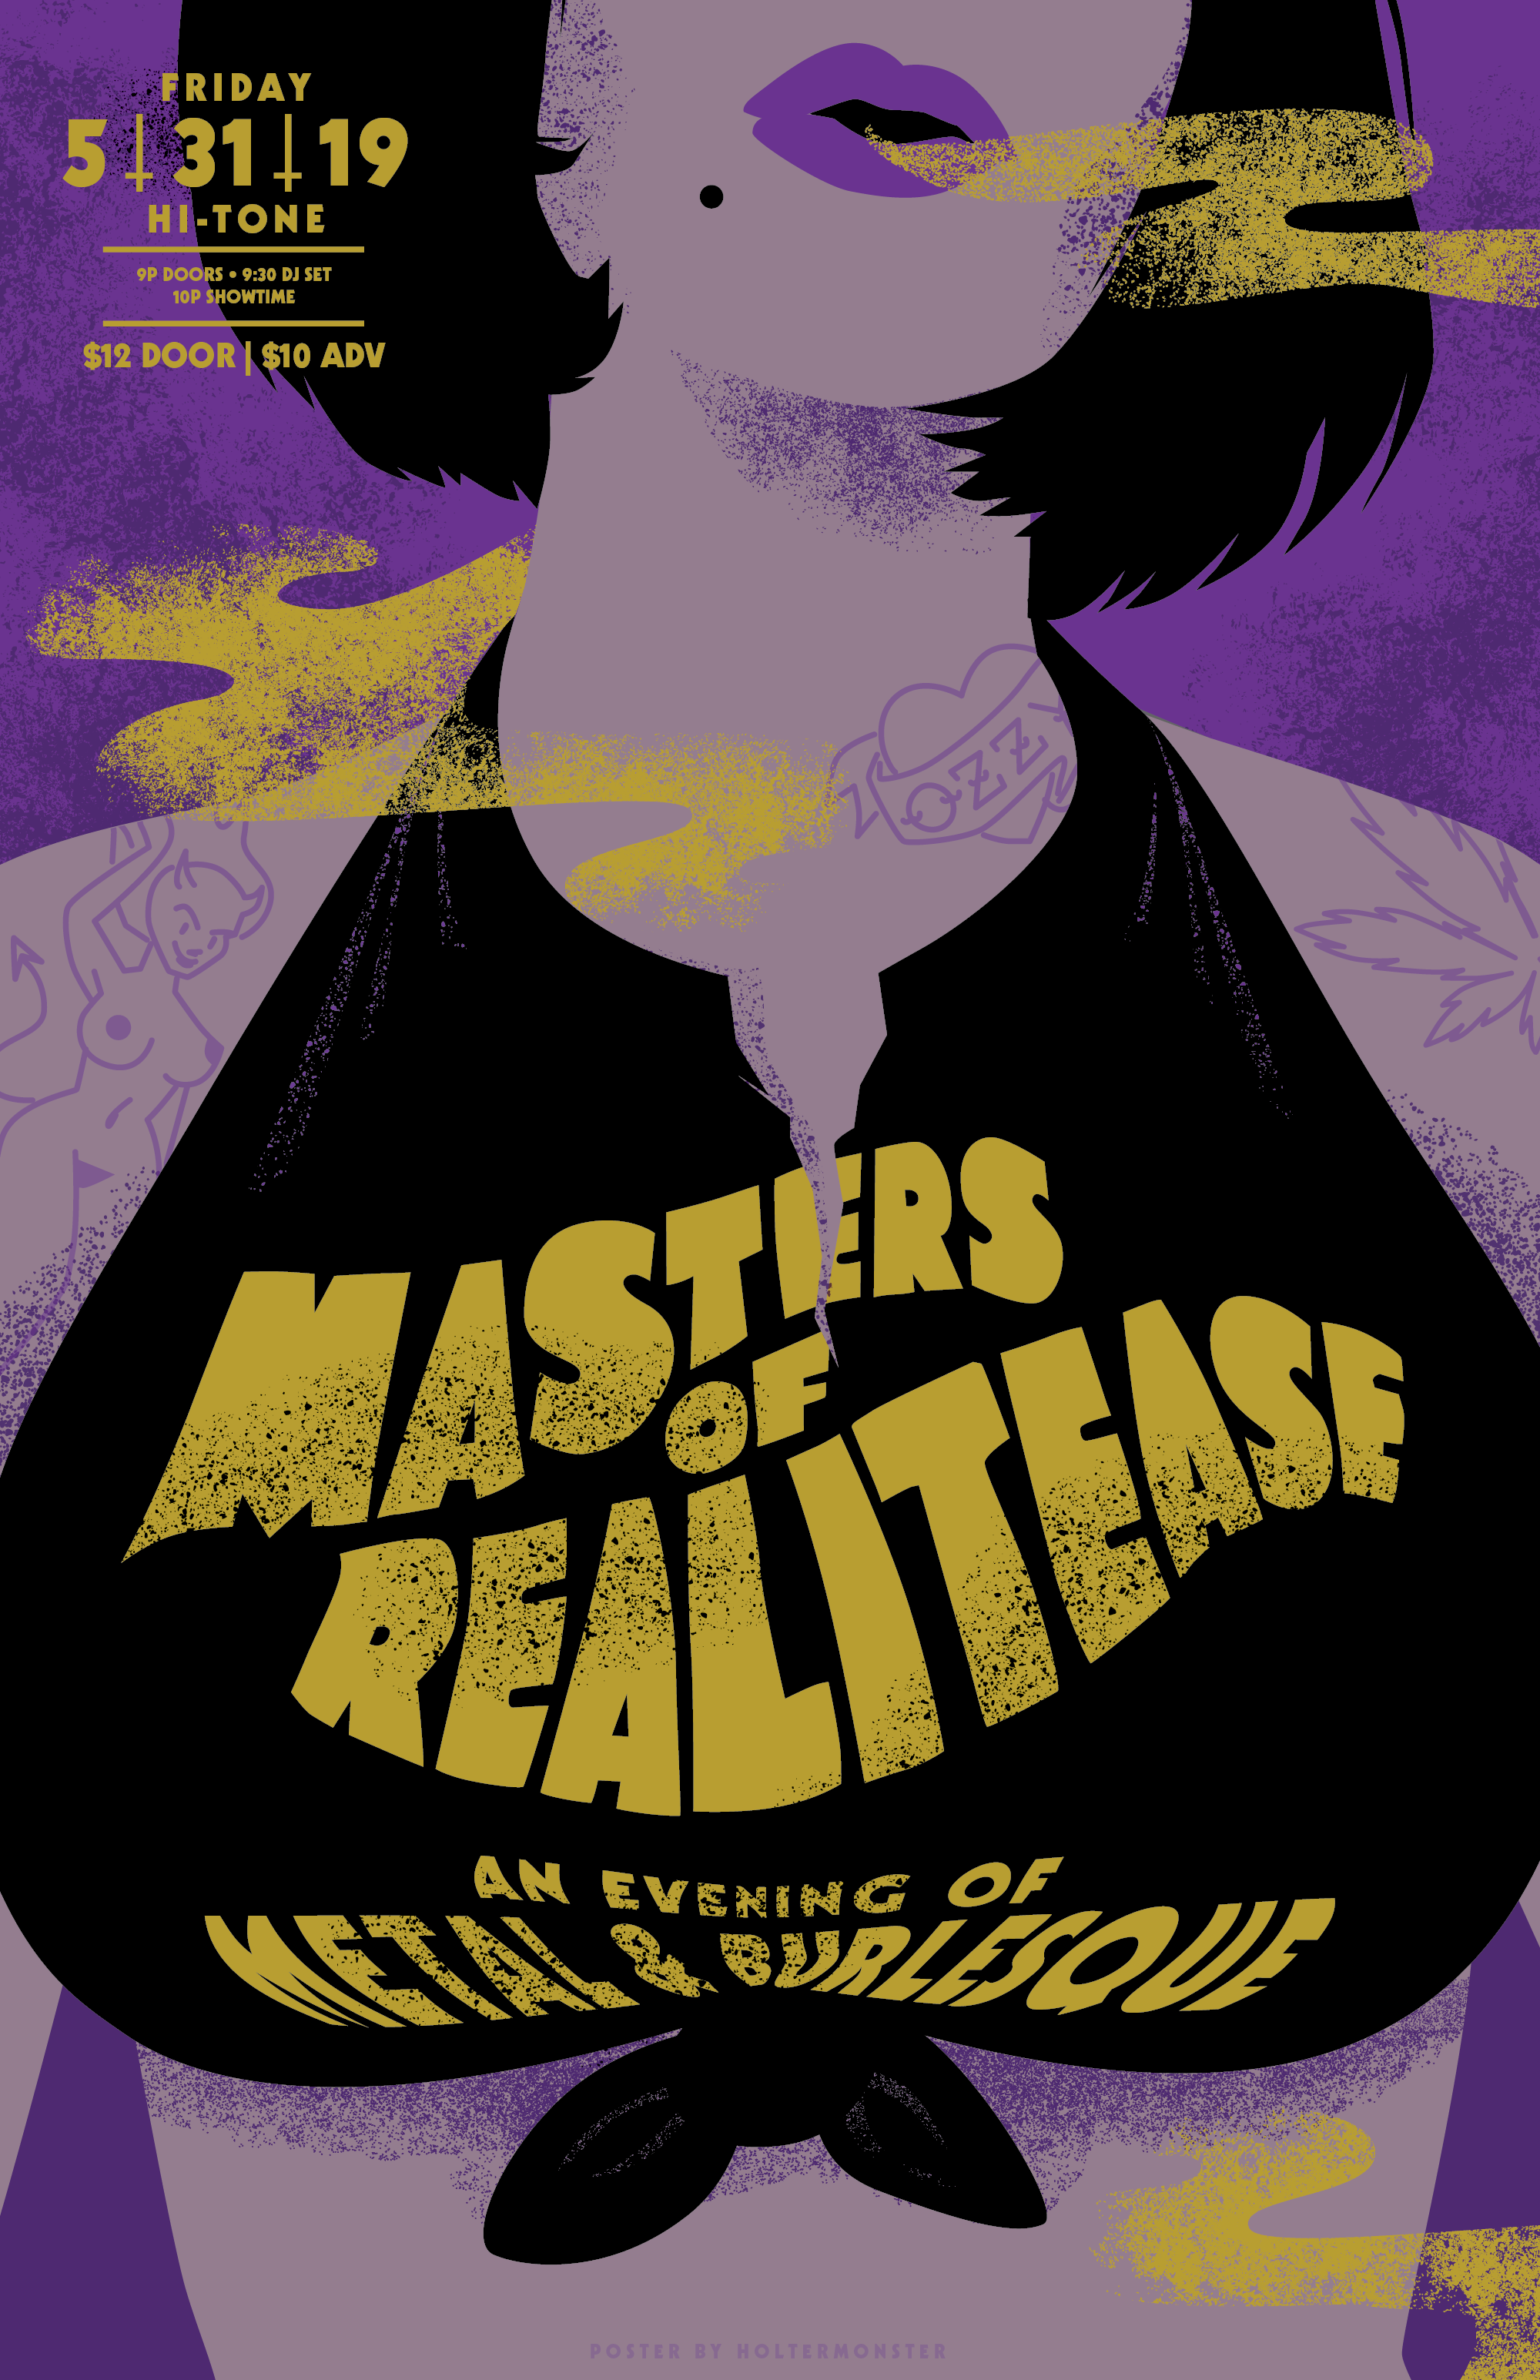 Masters of Realitease, metal-themed burlesque night